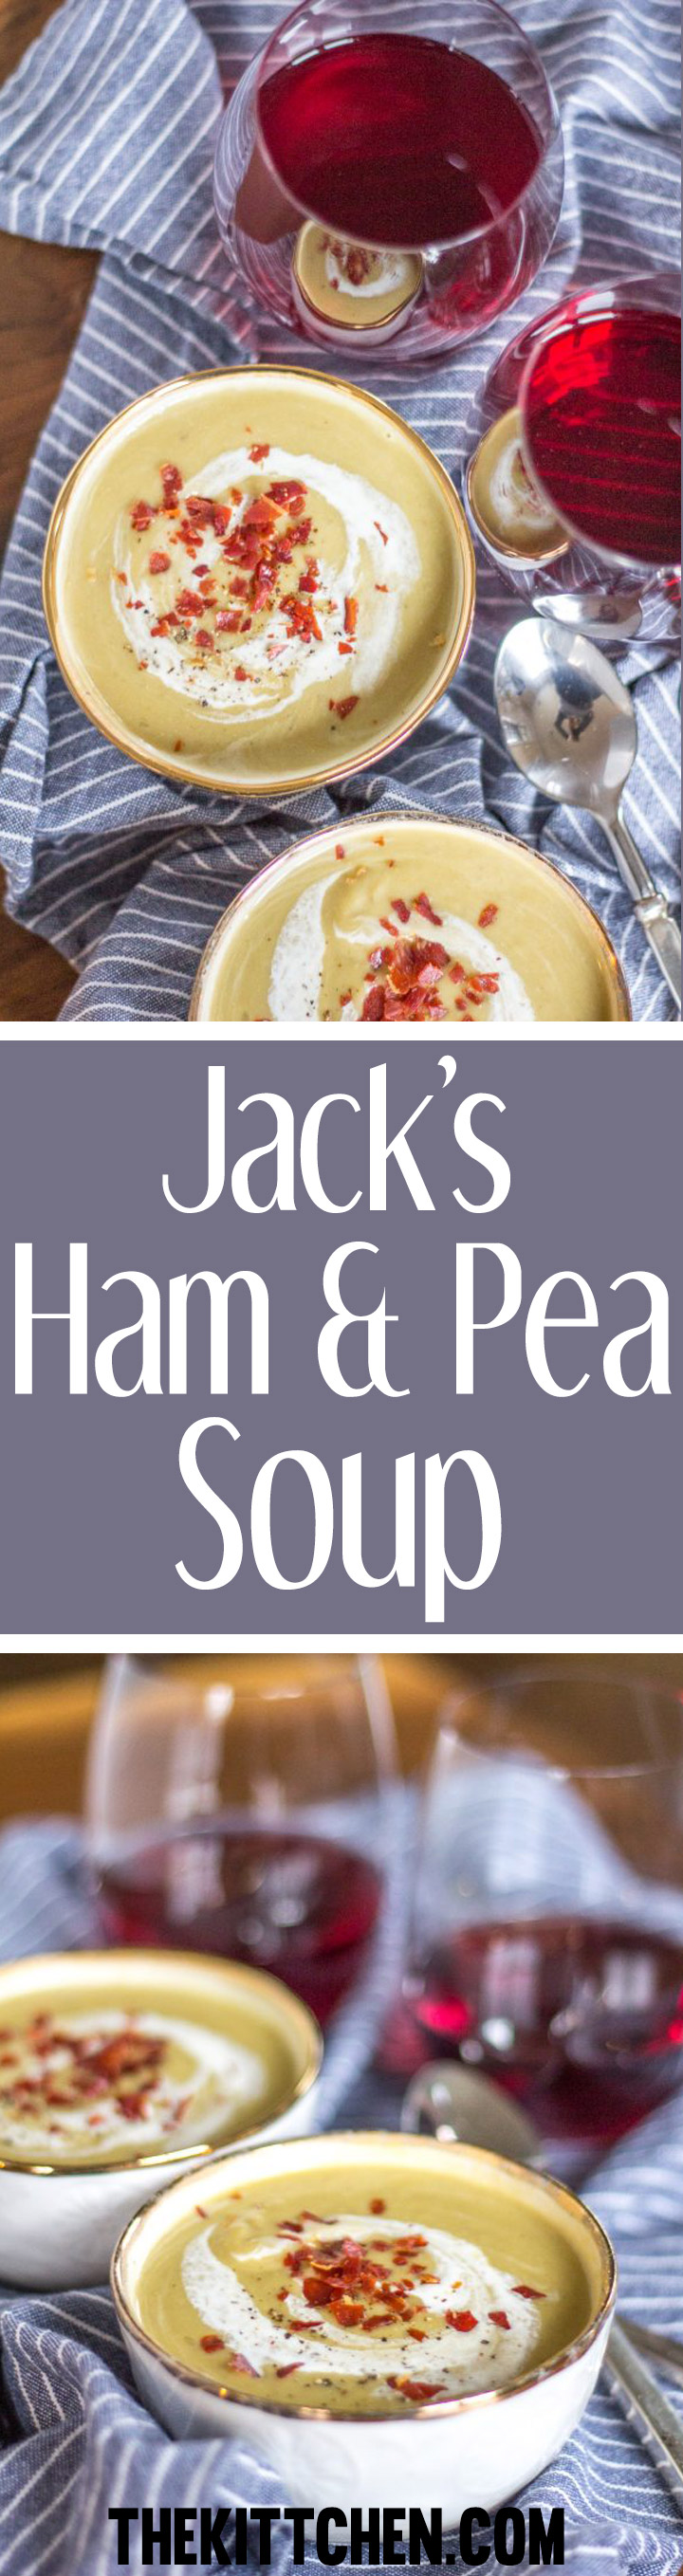 Ham and Pea soup is a rich creamy soup recipe, and it is the perfect meal to prepare using leftover ham.